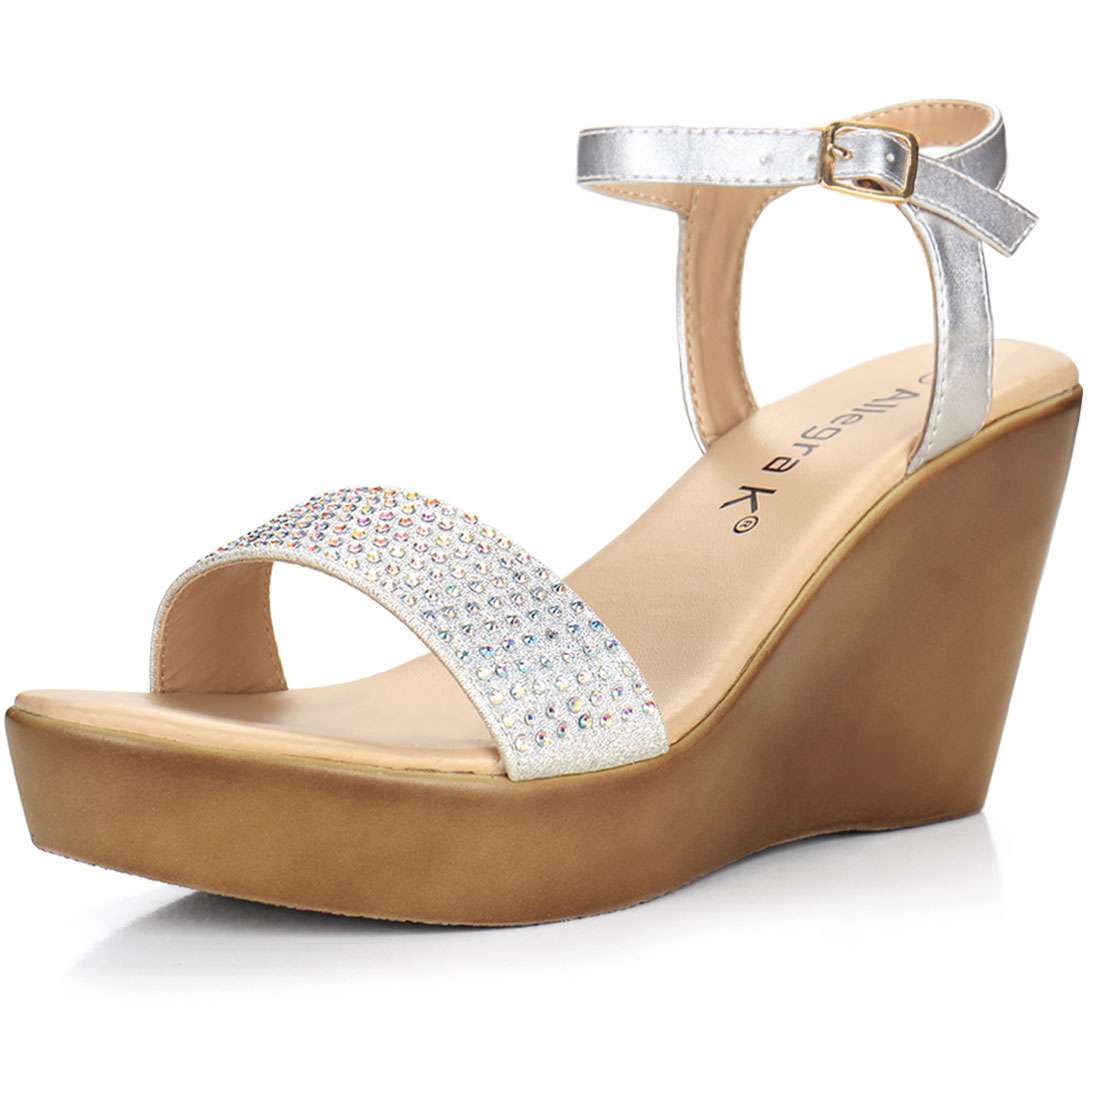 Woman Rhinestones Embellished Open Toe Wedge Sandals Silver US 9